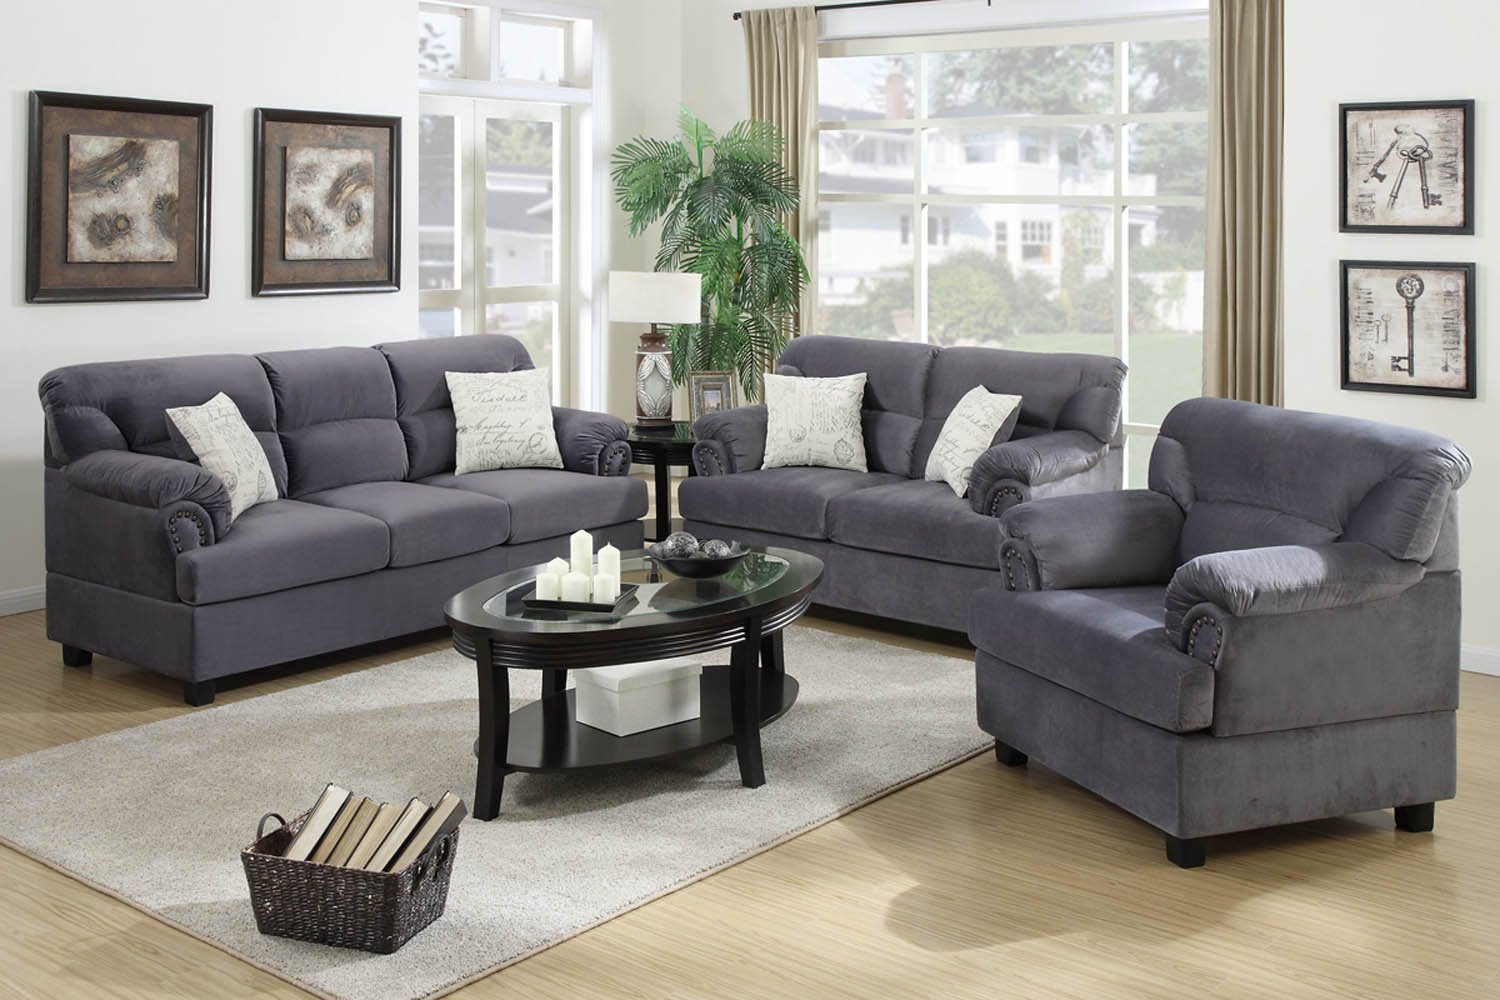 3 piece sofa set 3 Piece Grey Miro Fiber Suede Sofa Set 3 piece sofa set